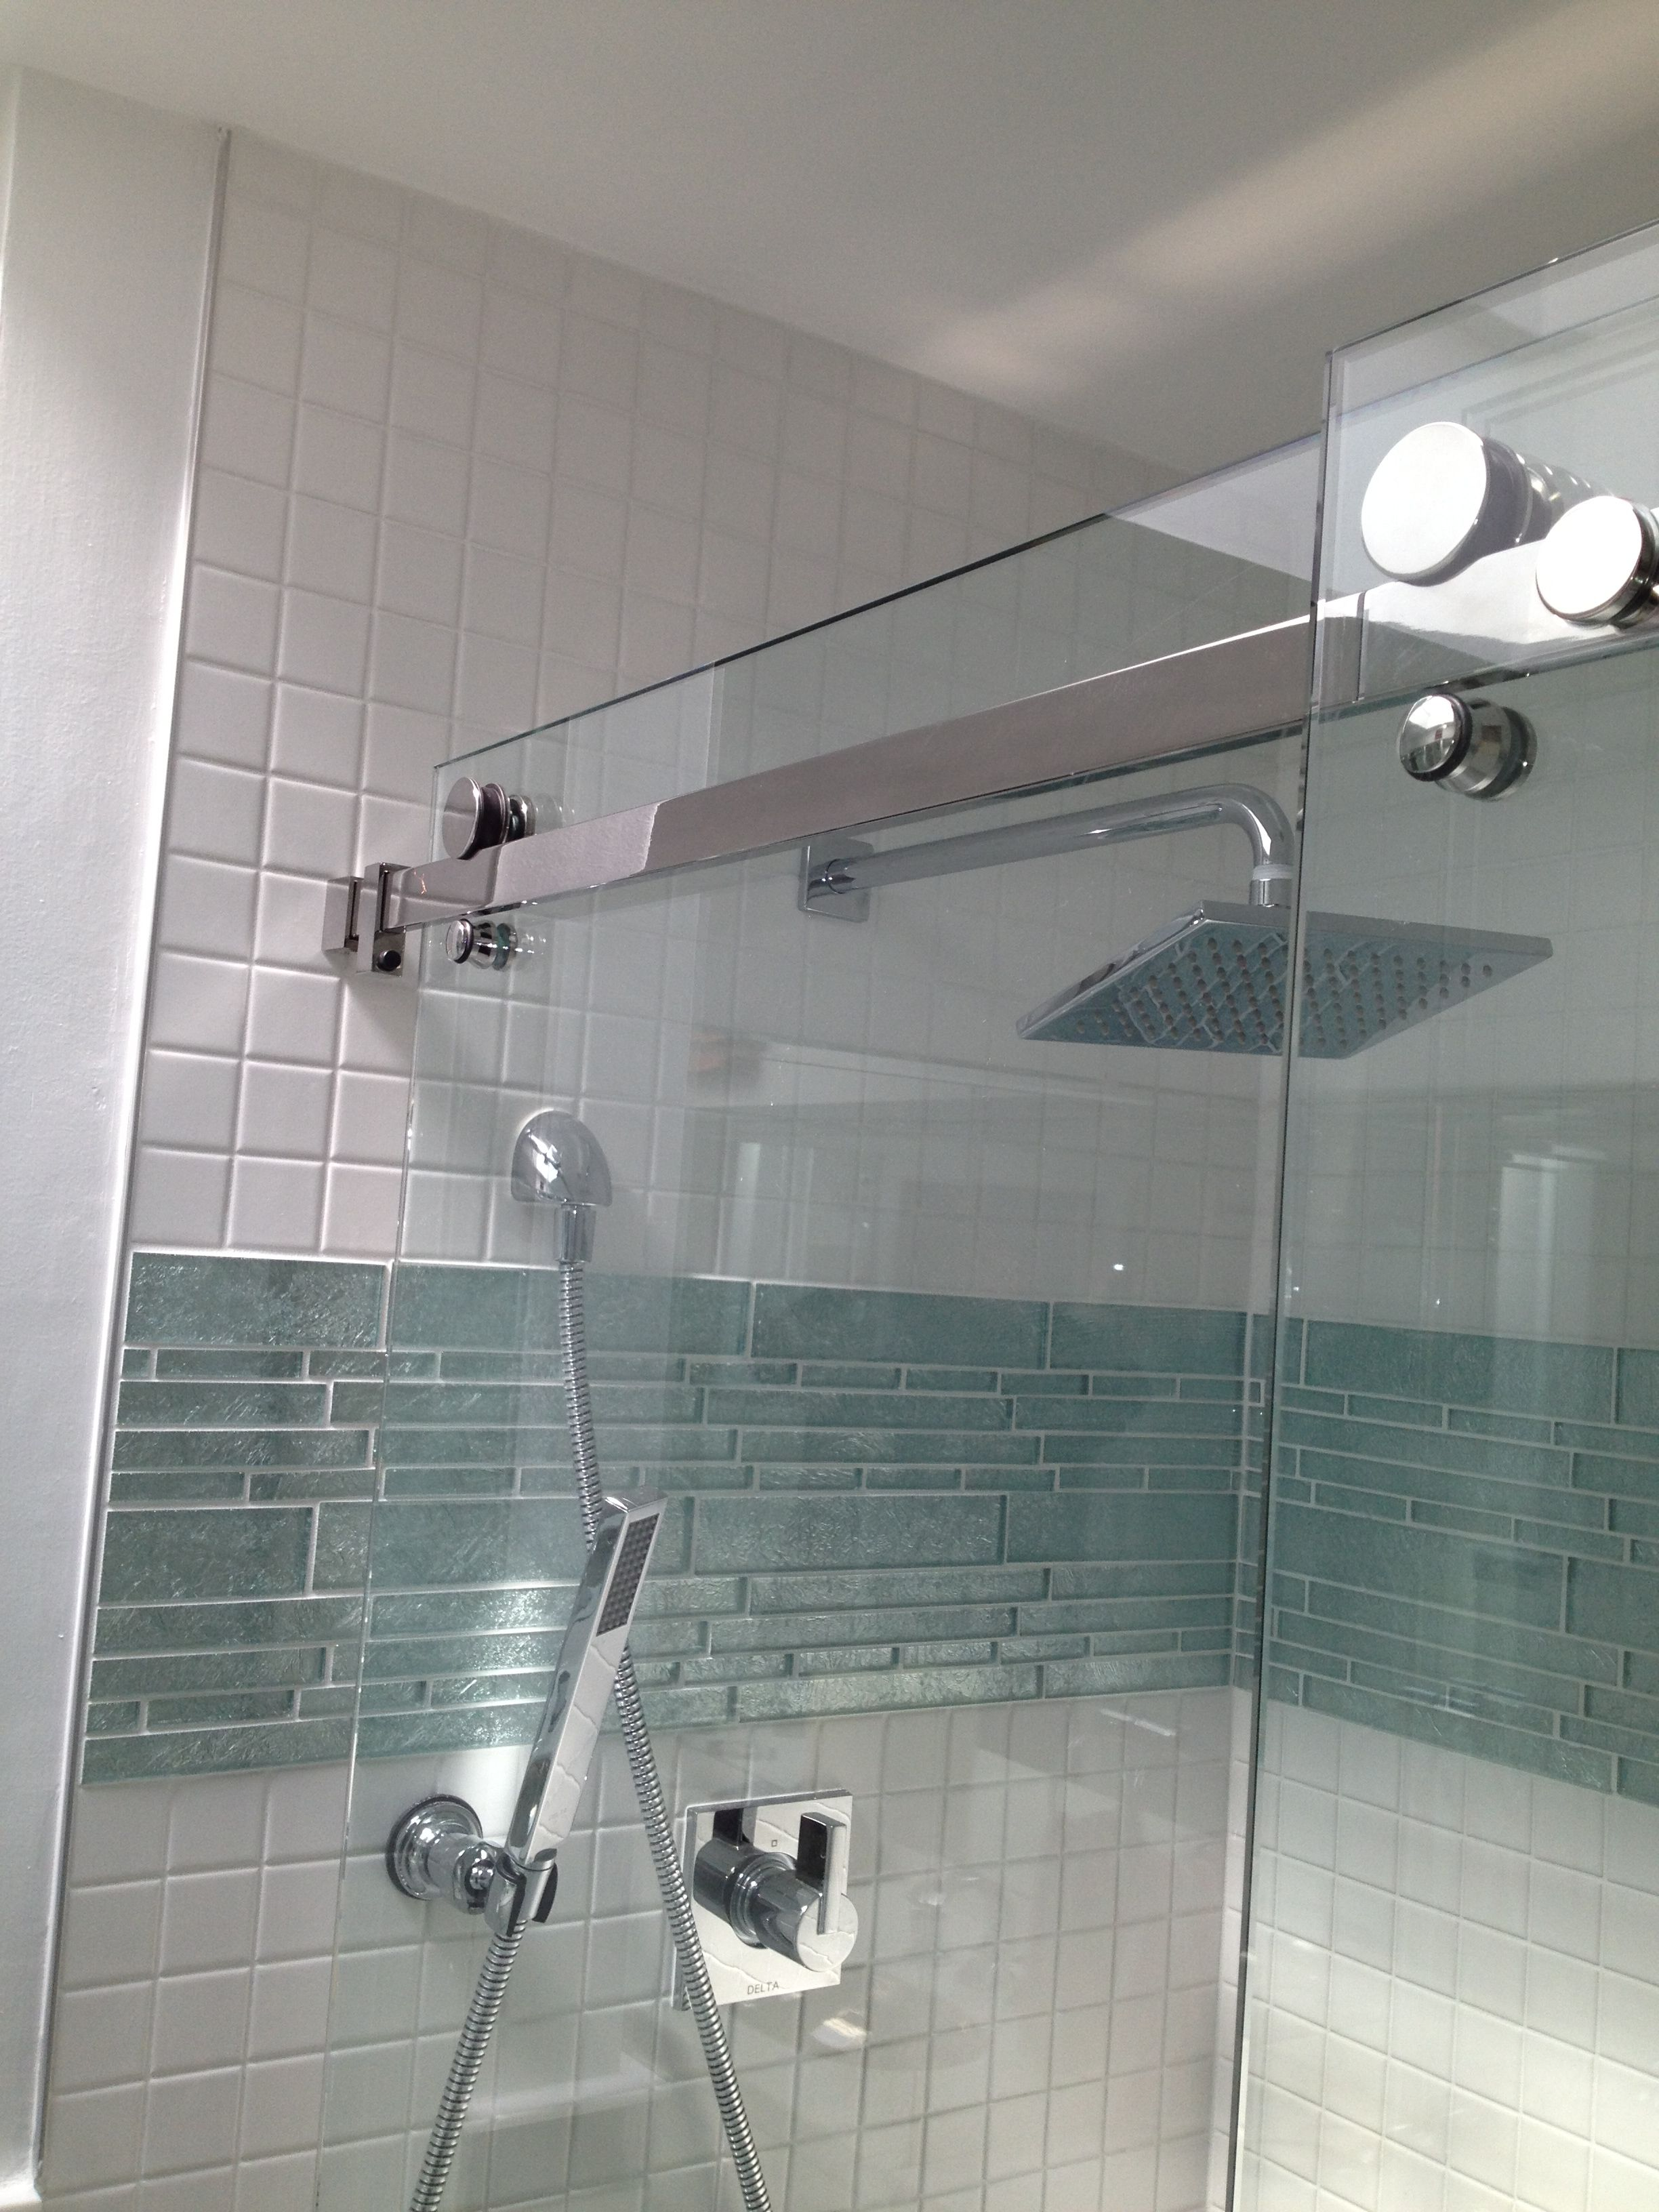 Bathroom Remodel Glass Tile accent band just above center (and is that a shower version of a